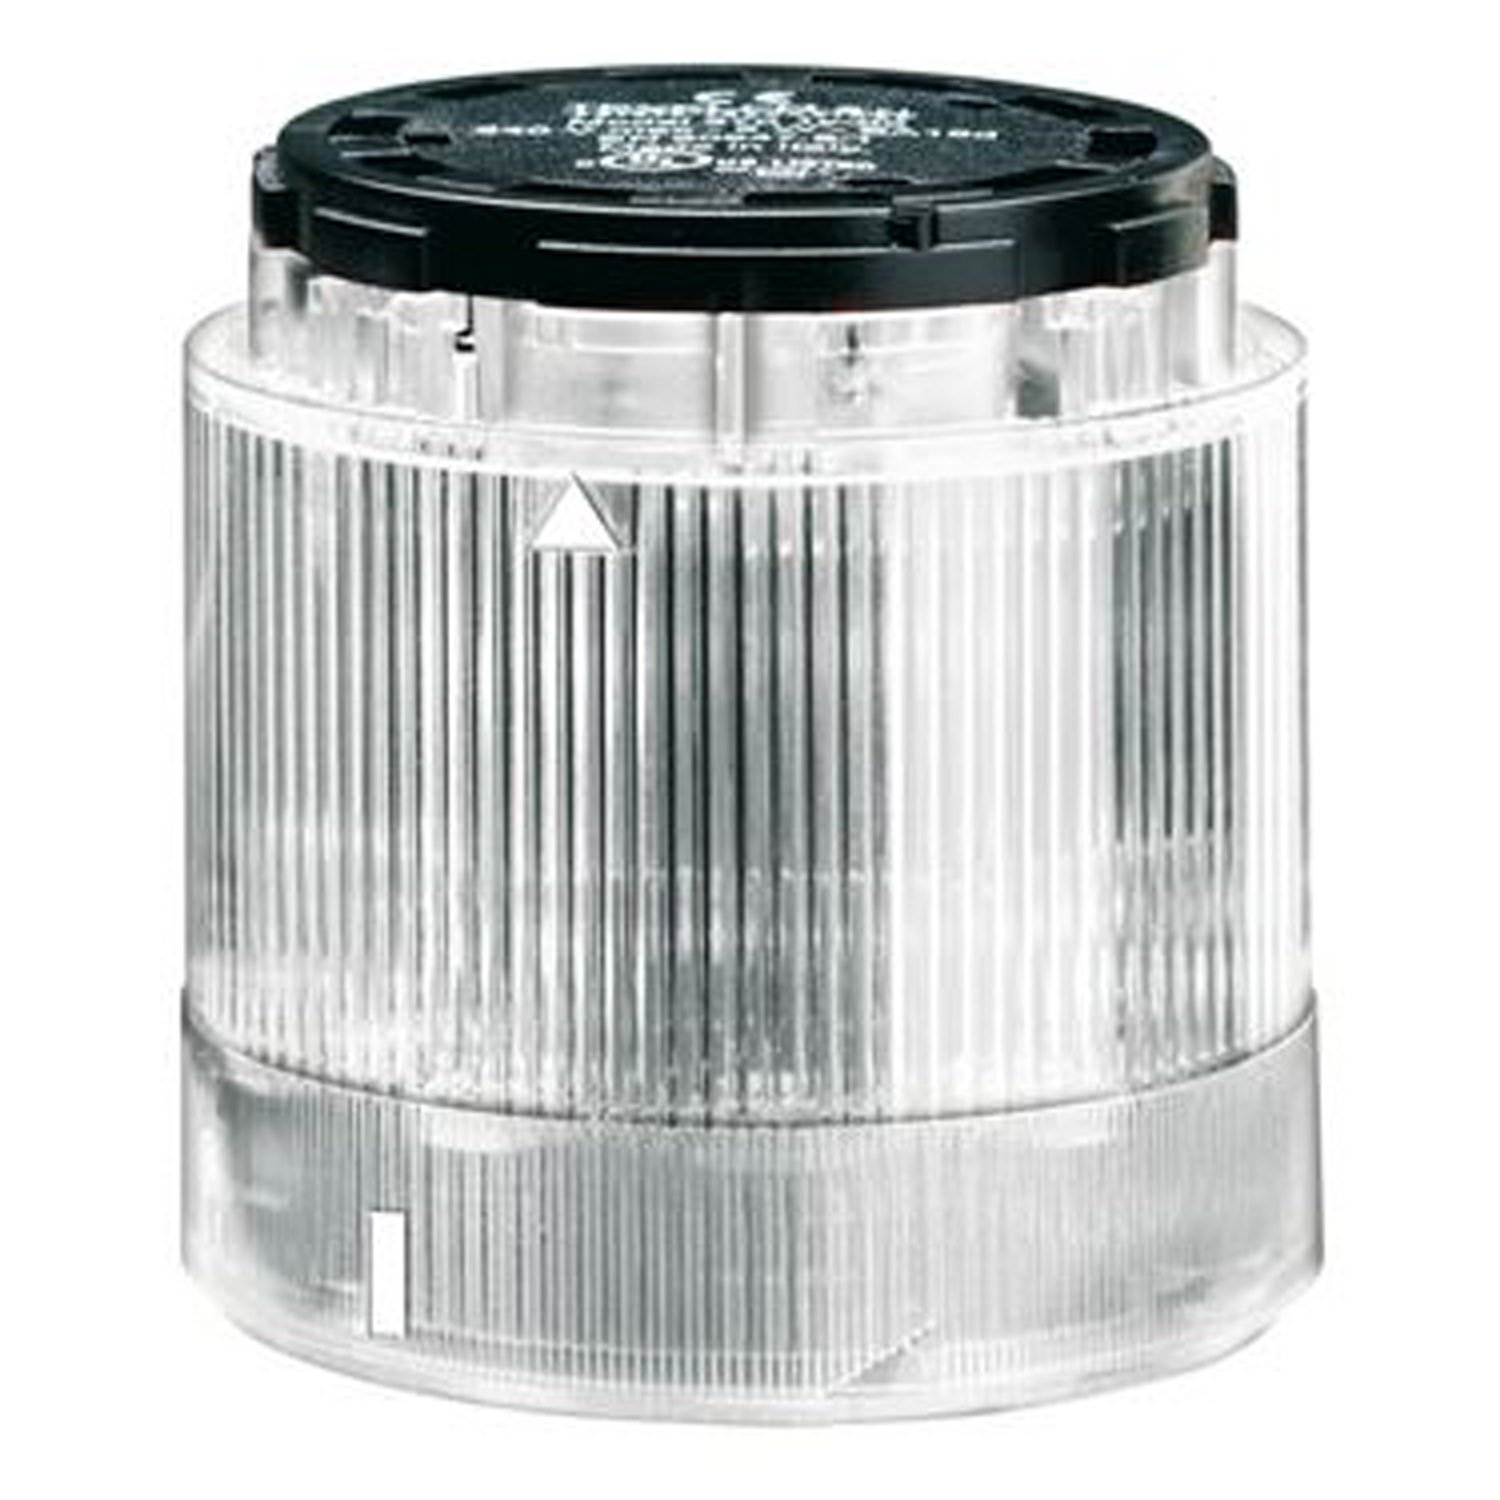 ASI 8LT7GLB8 24 VAC DC LED B Tower Max 64% OFF Limited price Module Blinking Signal Light